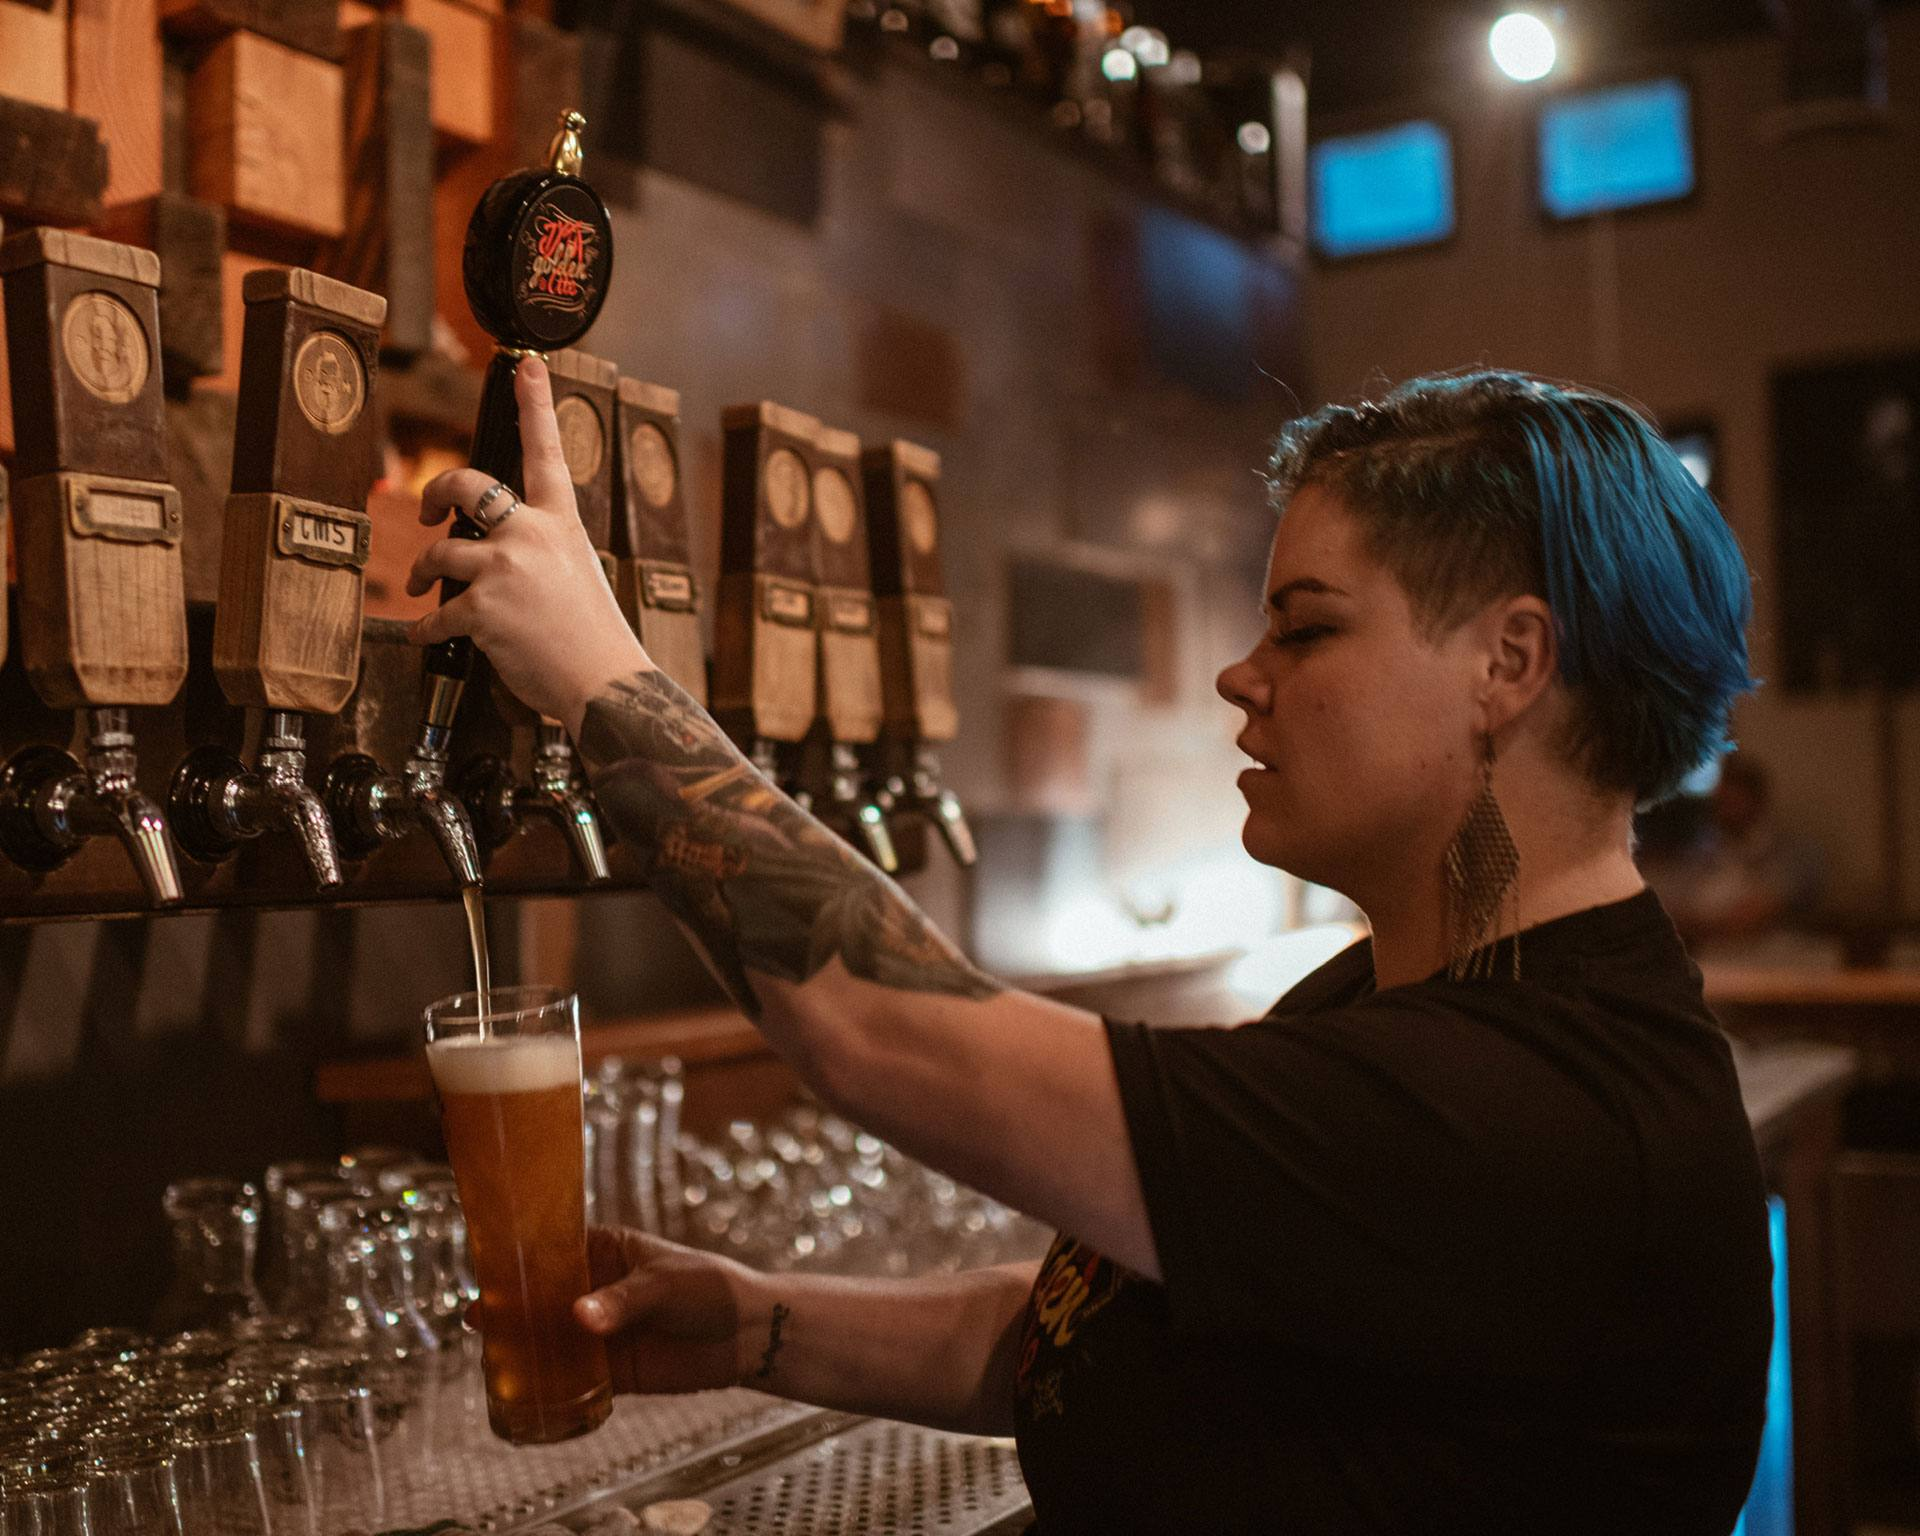 Someone pouring a draft beer